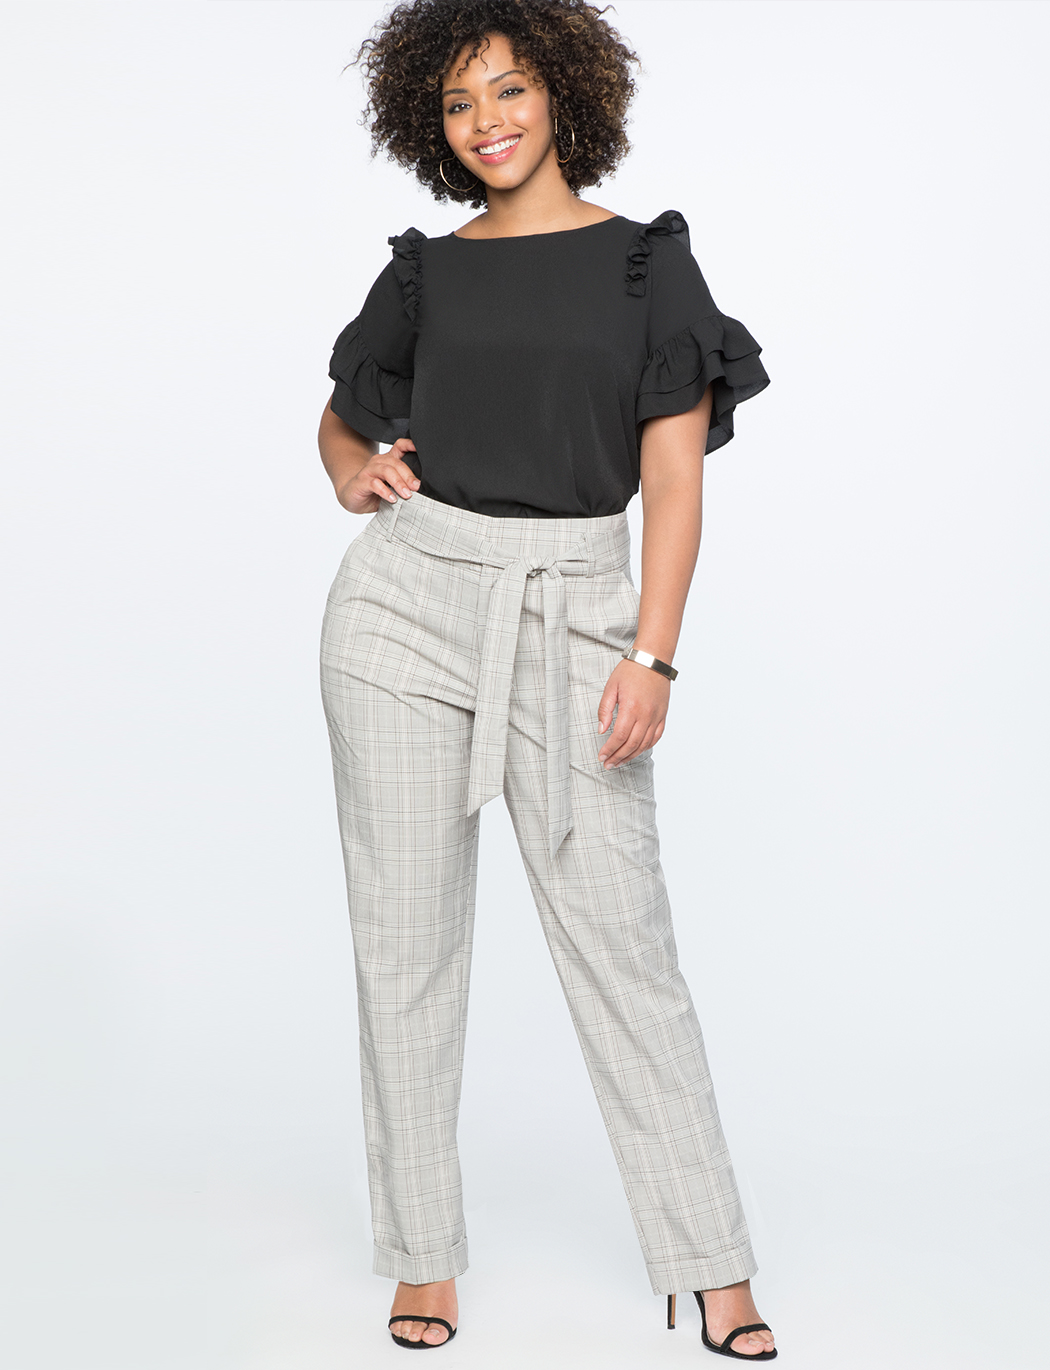 268d70418085b High Waisted Plaid Cuff Pant with Tie